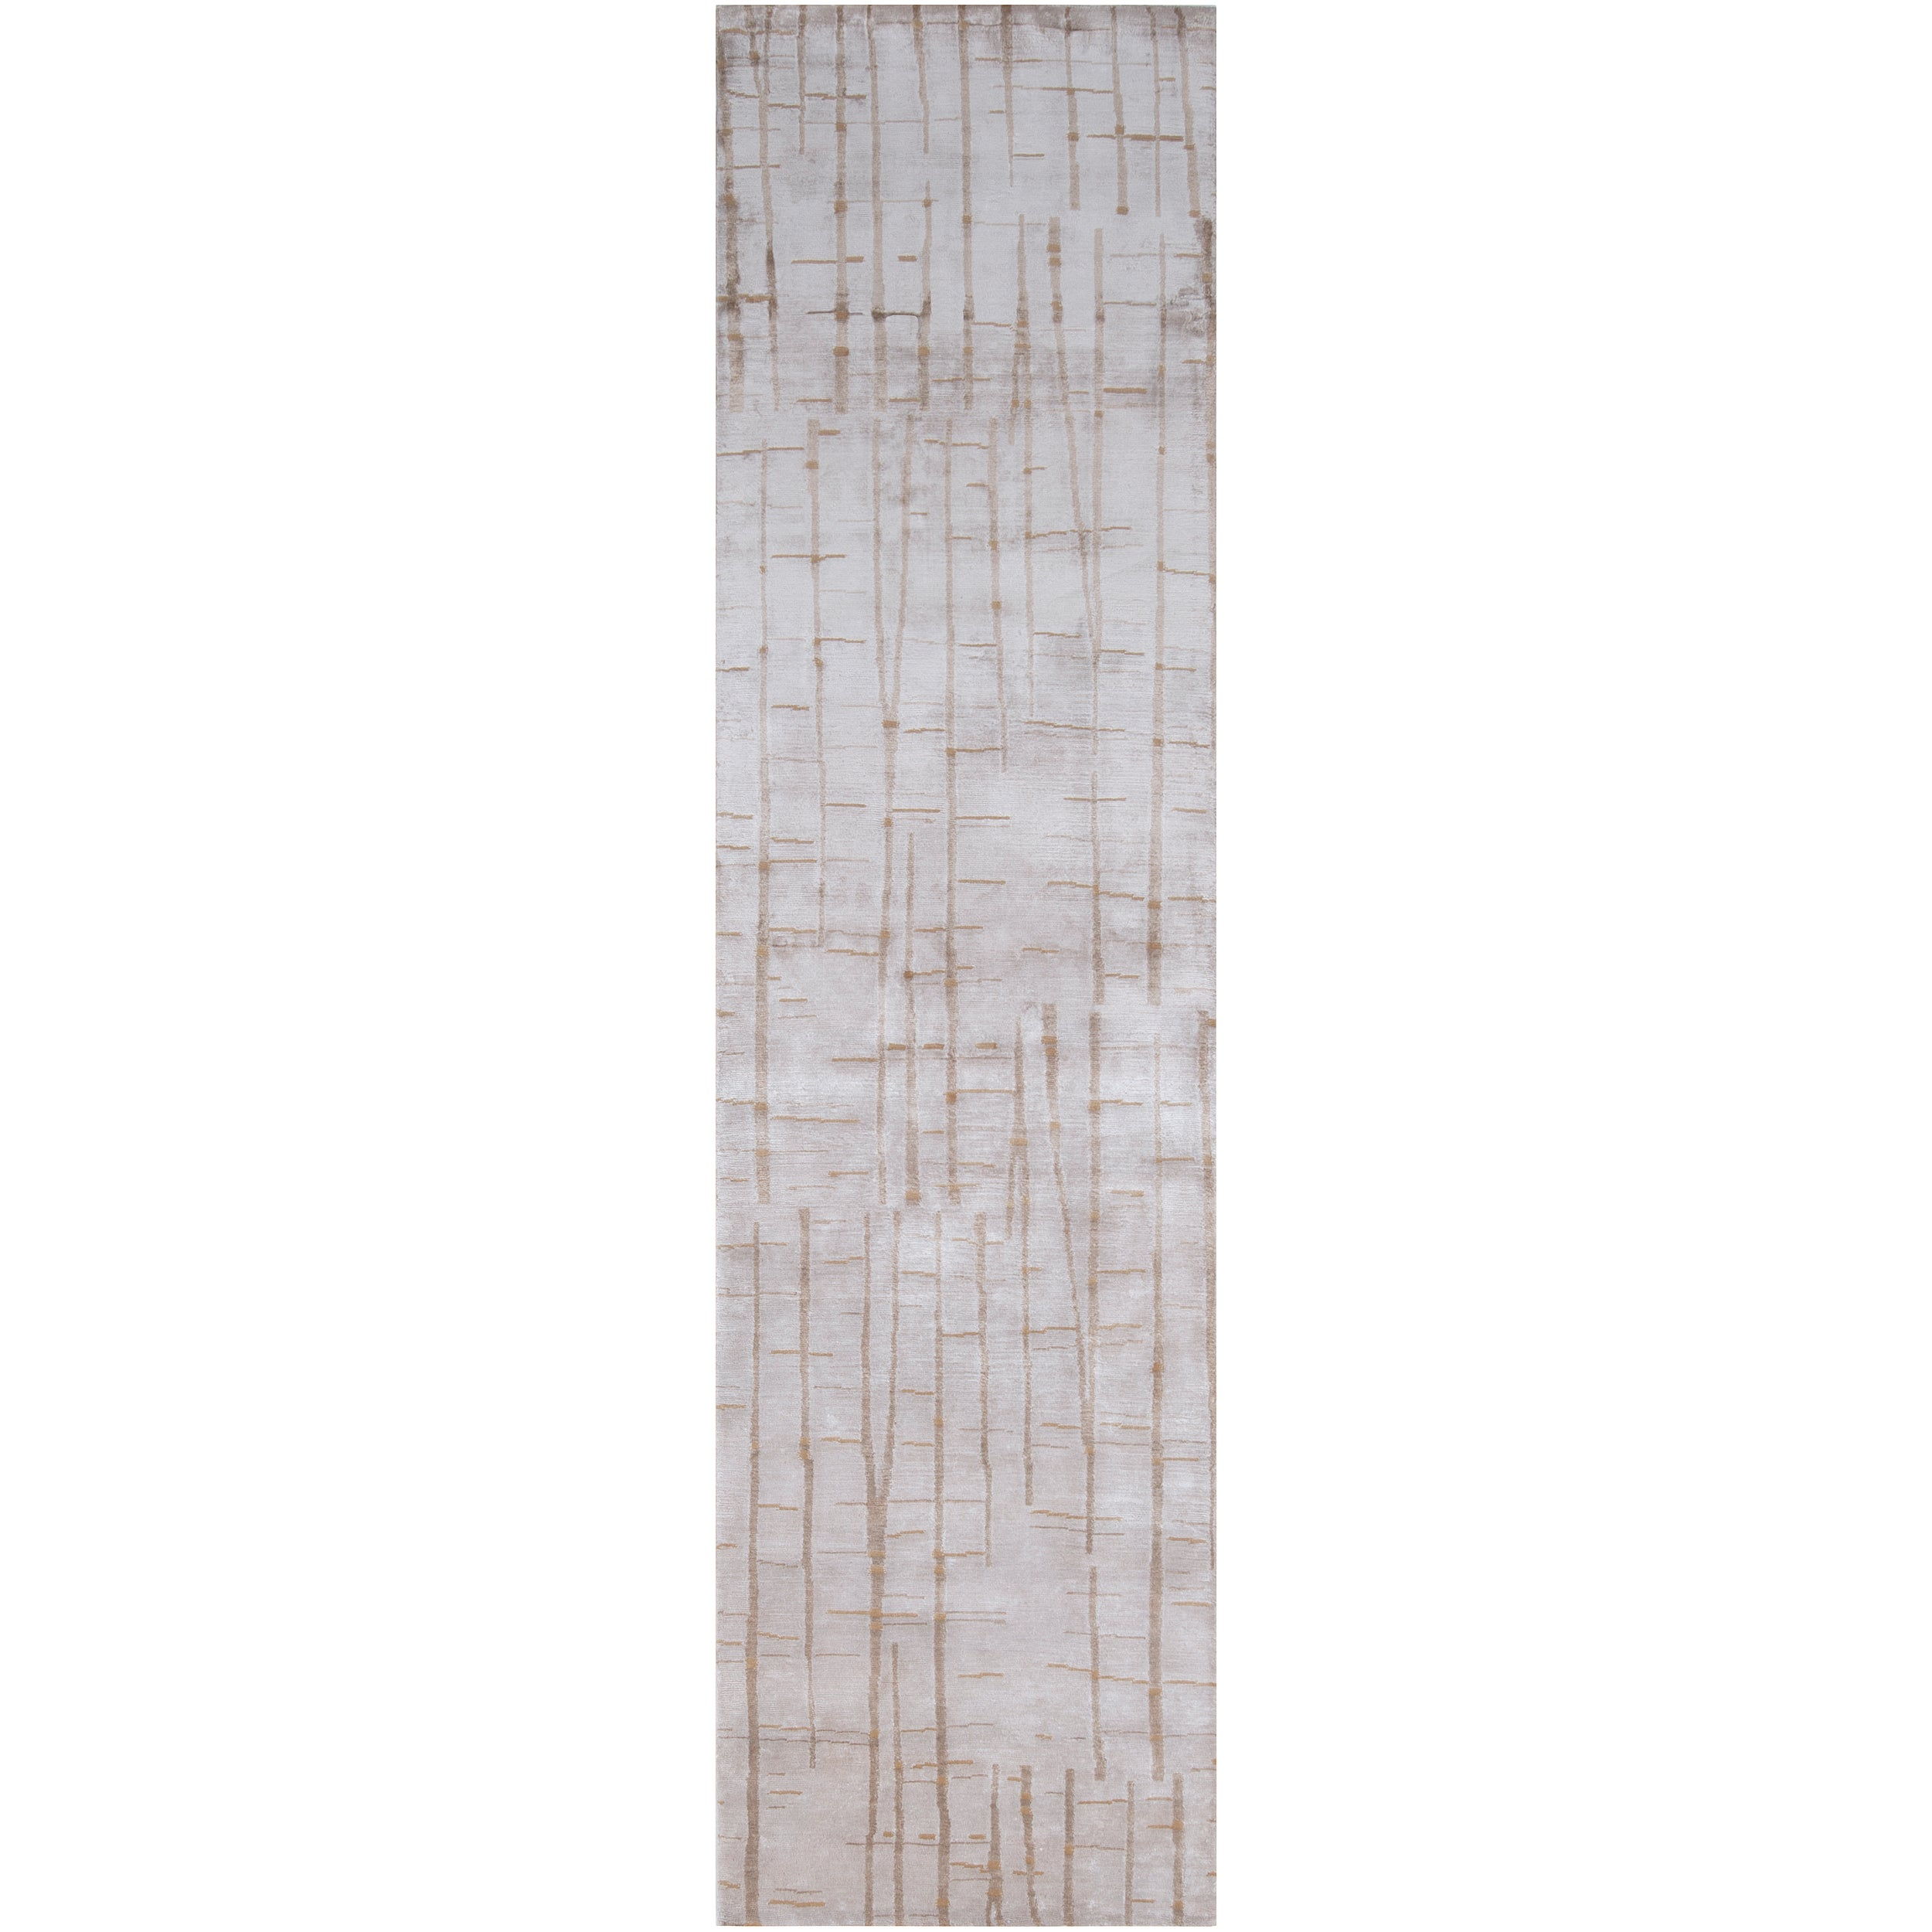 Hand-knotted Beige Veleka Abstract Design Wool Rug (2 '6 x 10')